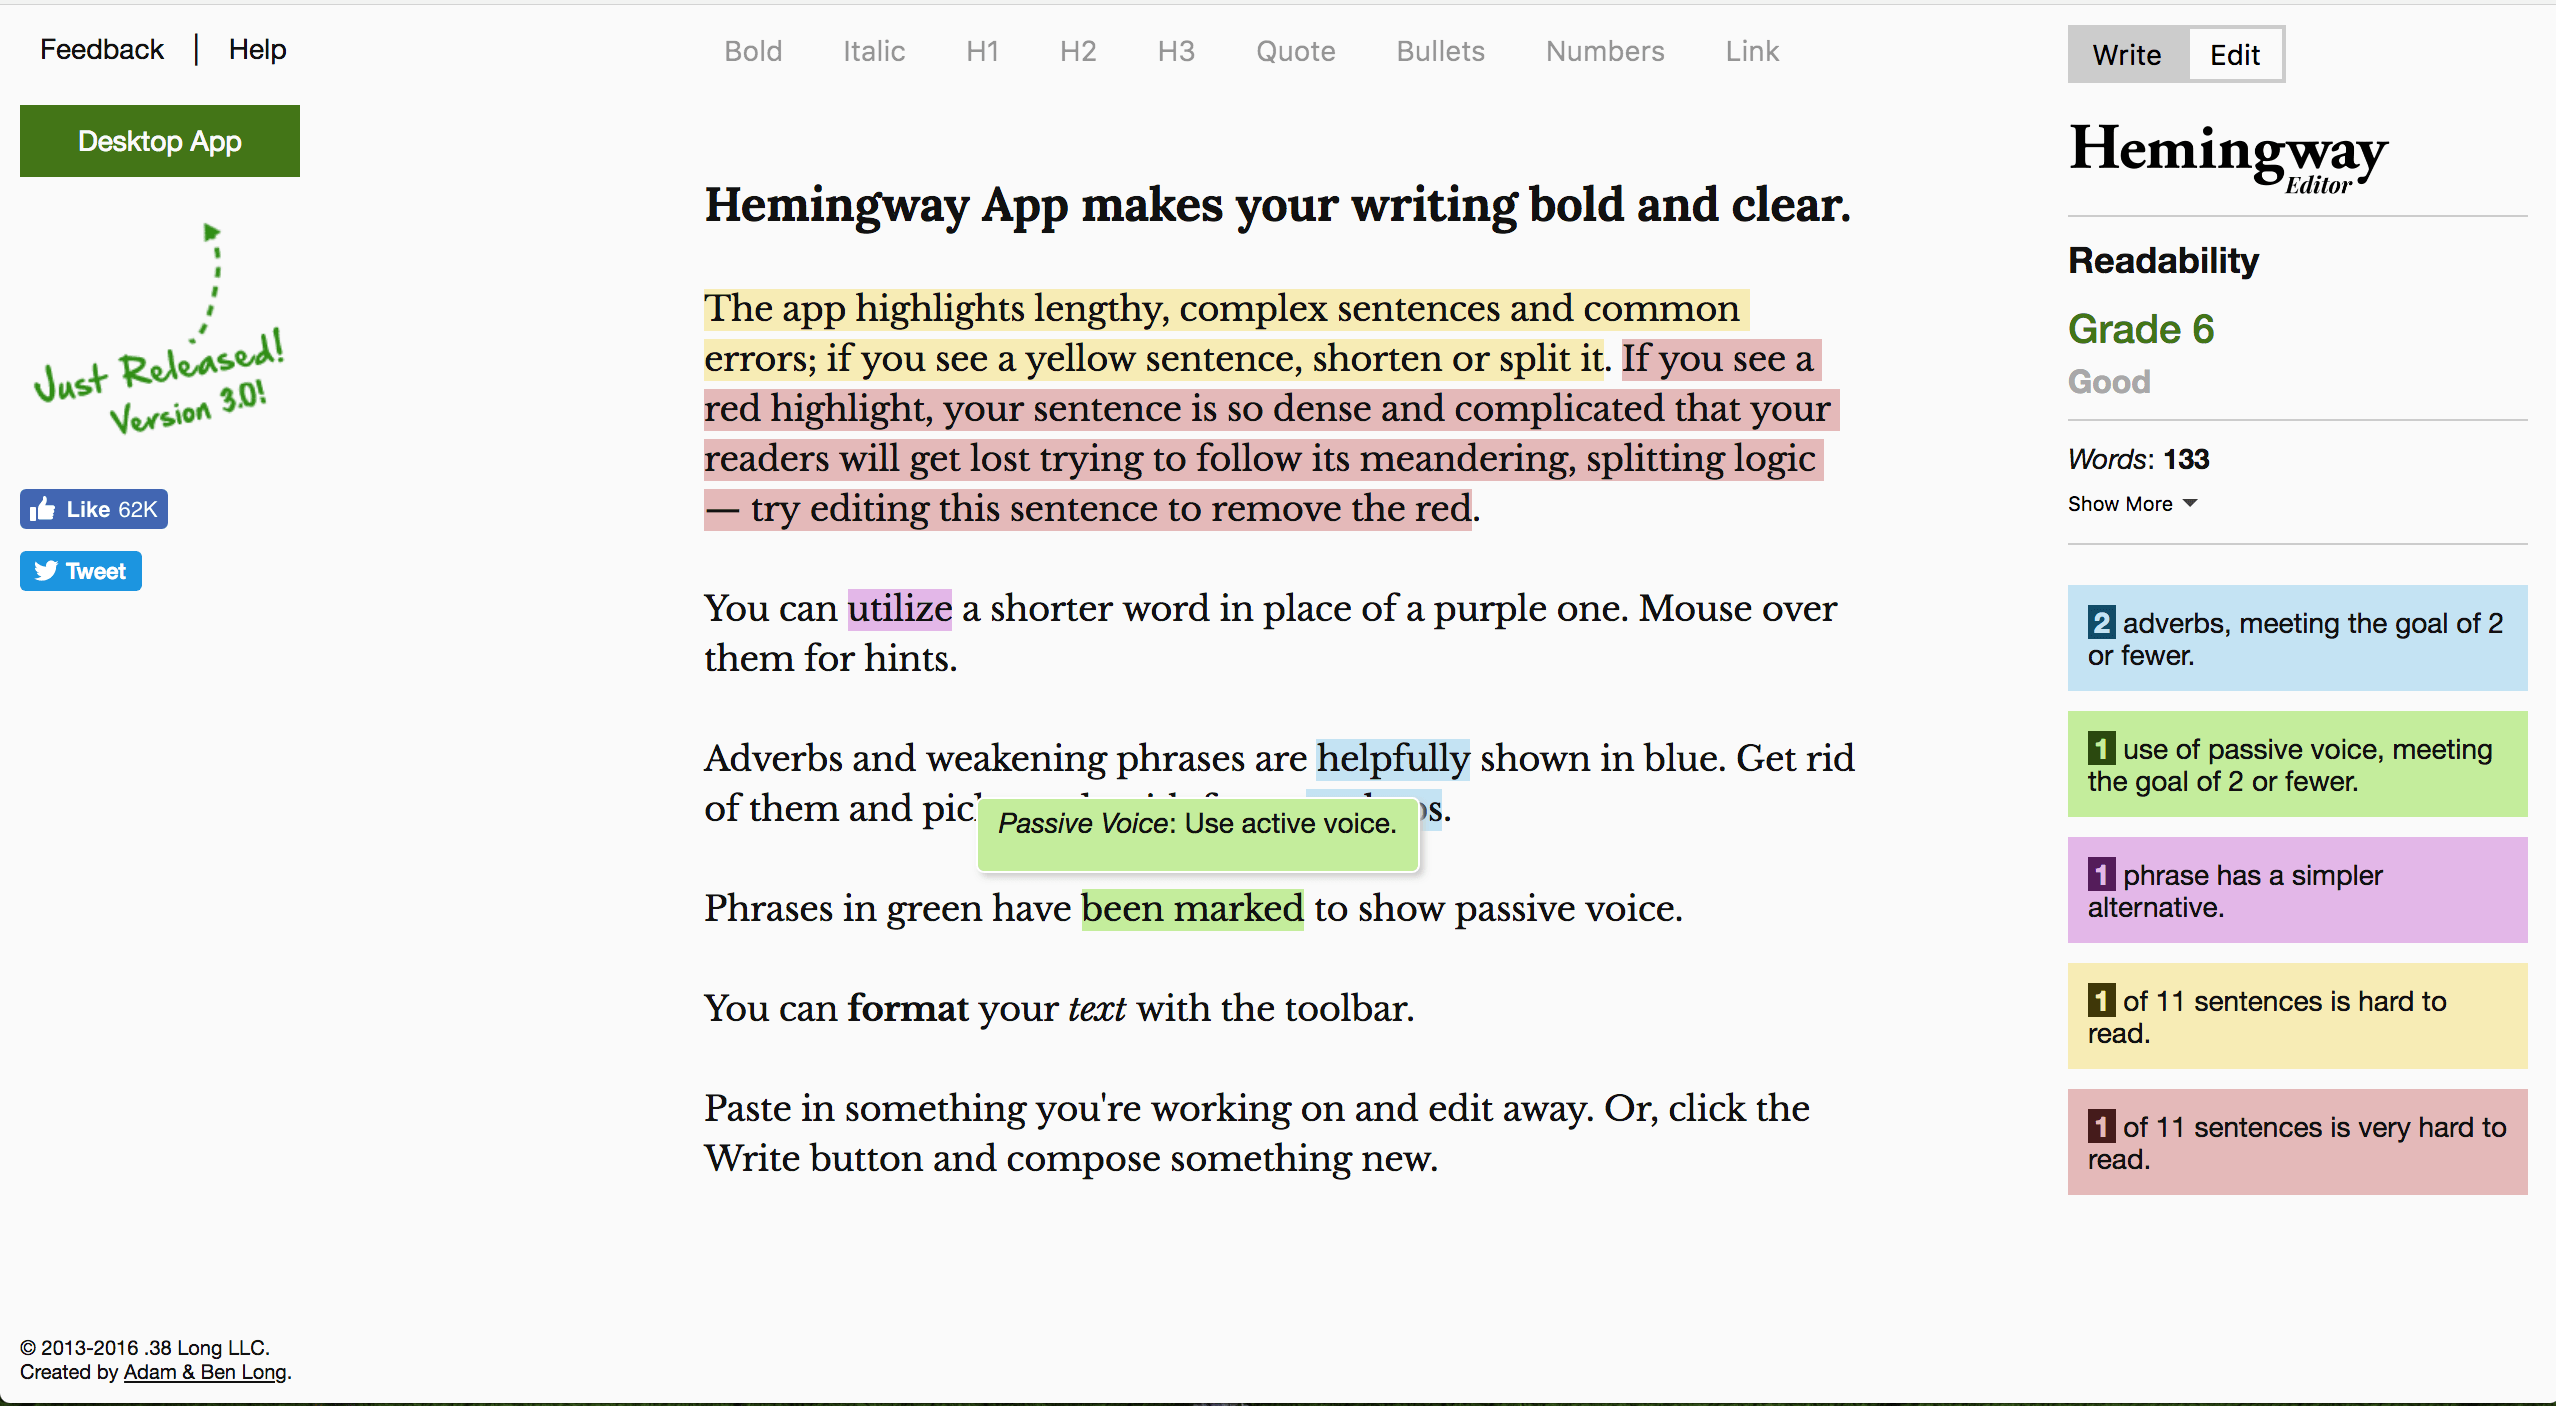 Best Proofreading Software of 2019: Grammarly vs Hemingway vs